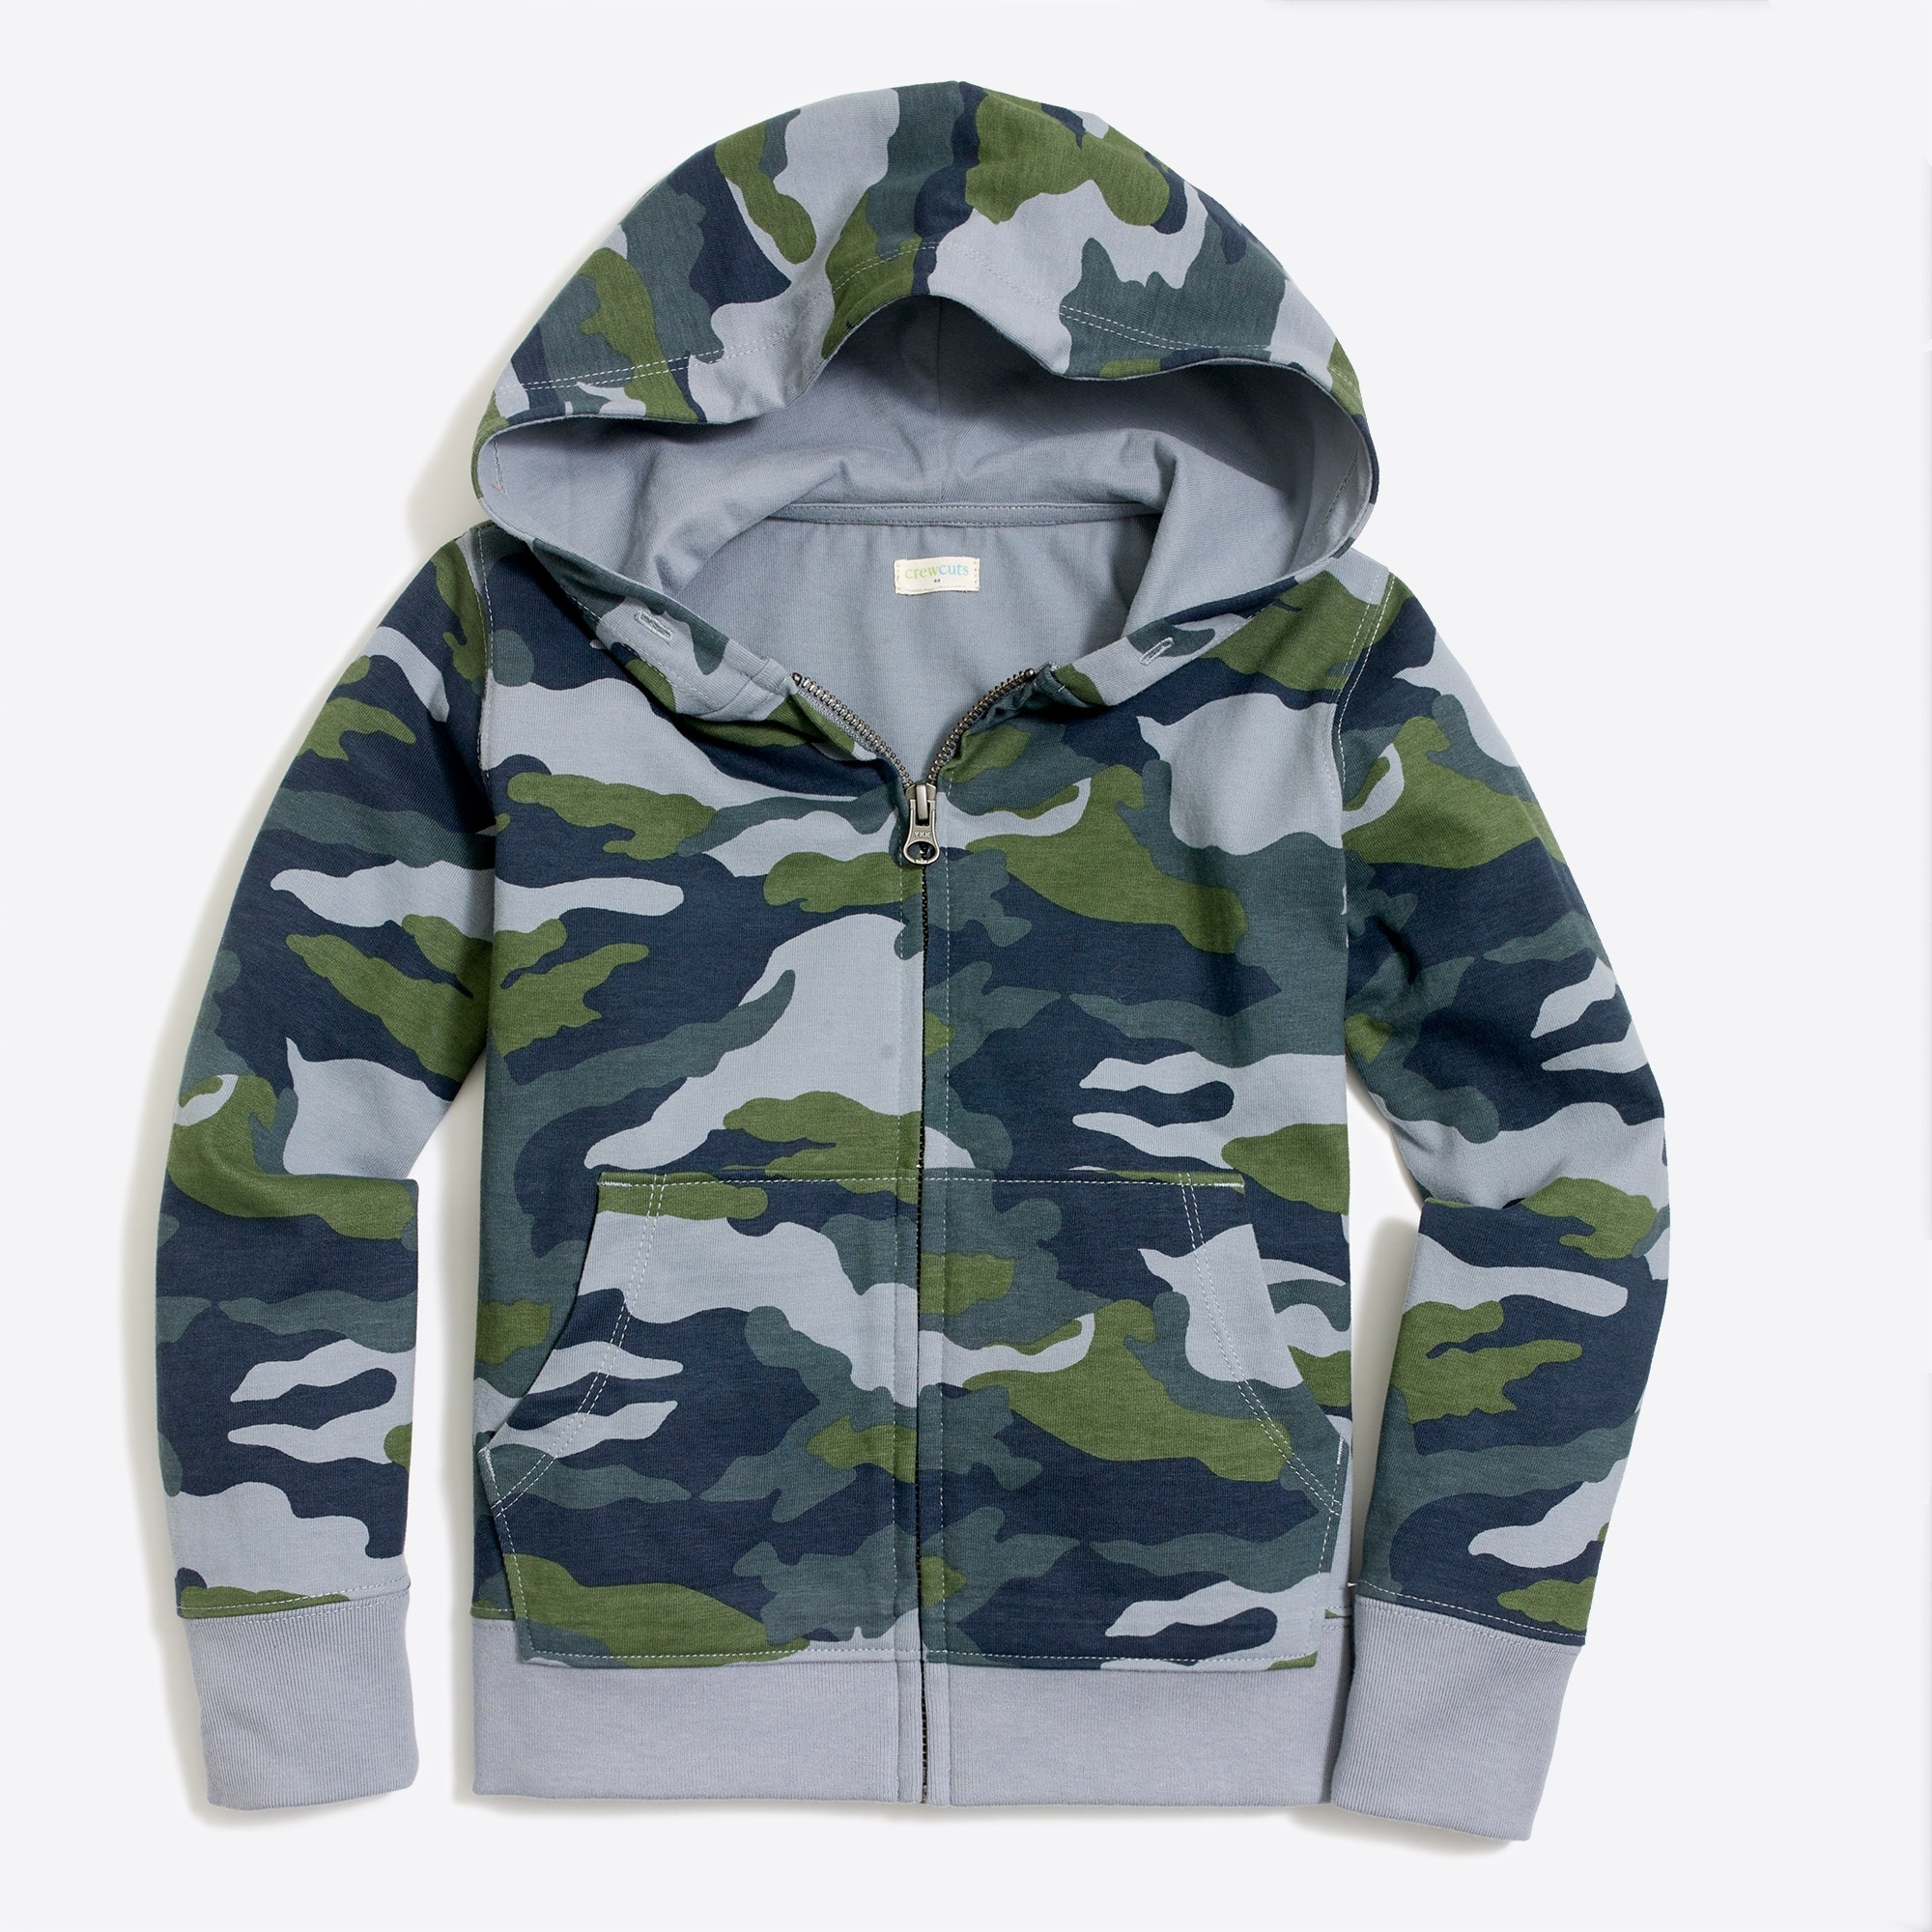 Boys' camo full-zip hoodie factoryboys the camp shop c